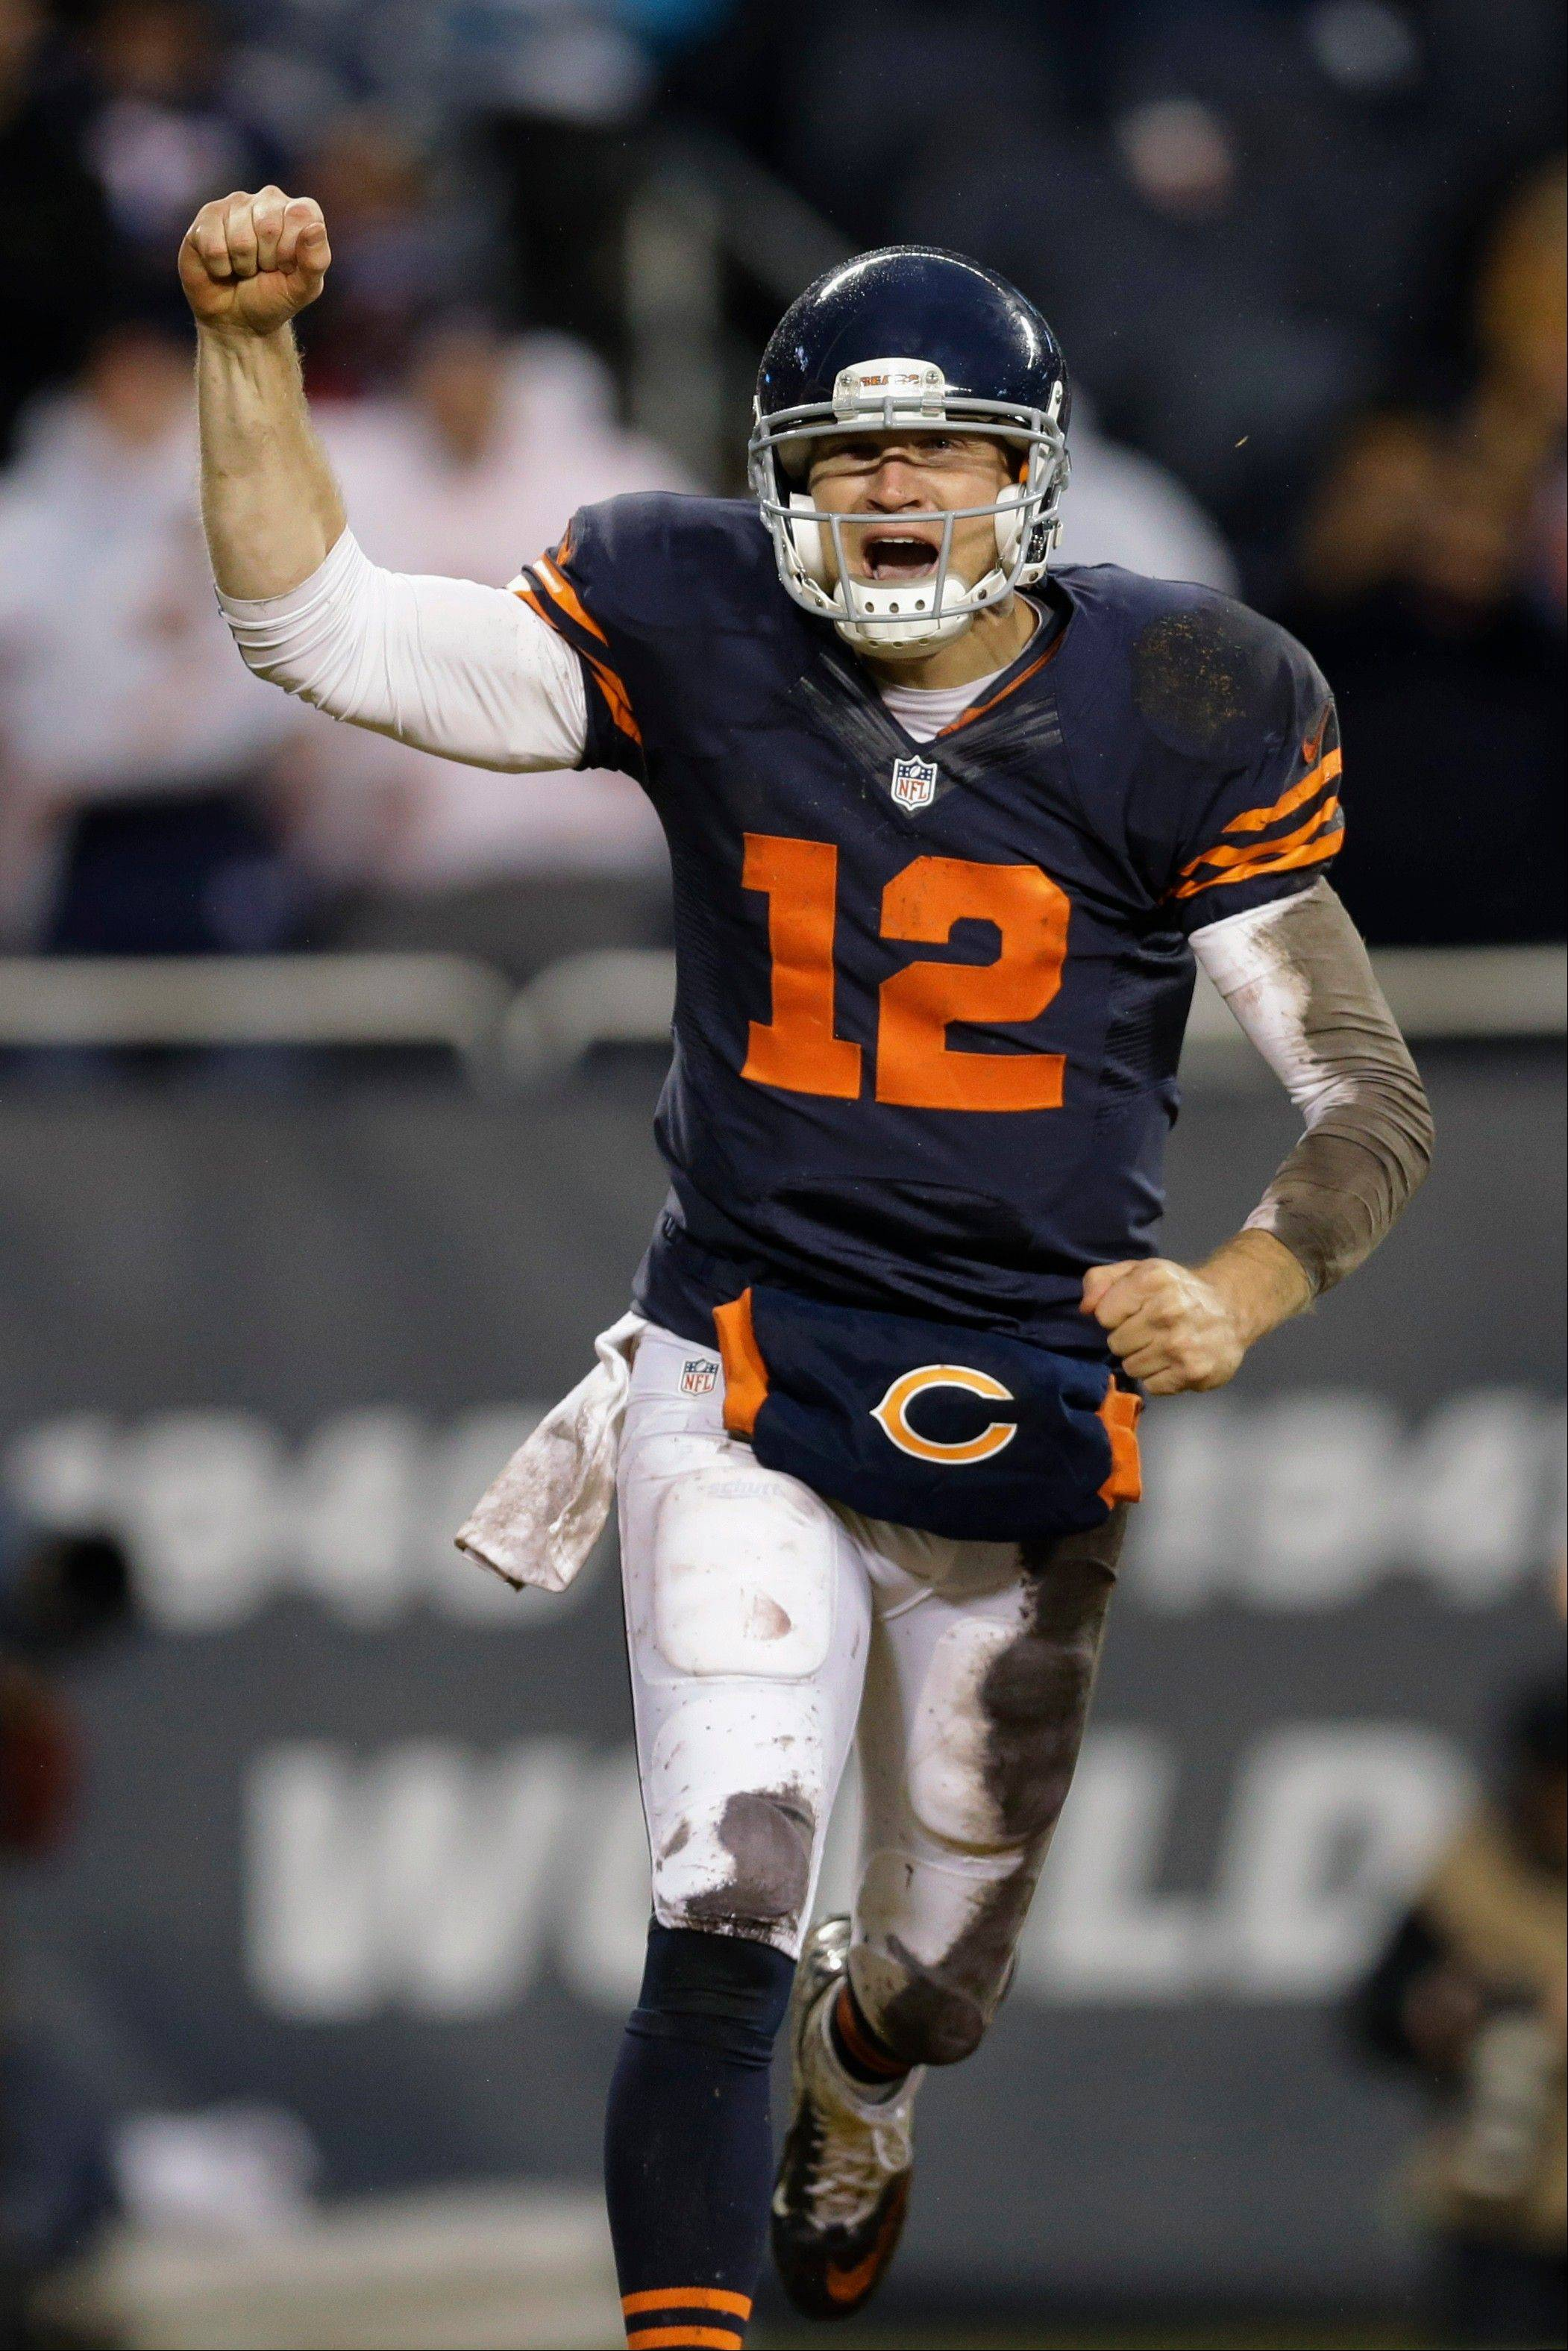 Josh McCown celebrates after throwing a touchdown pass to Matt Forte during the second half of the Bears win against the Ravens. McCown appears to be peaking at 34, but coach Marc Trestman says all QBs have their own journeys.